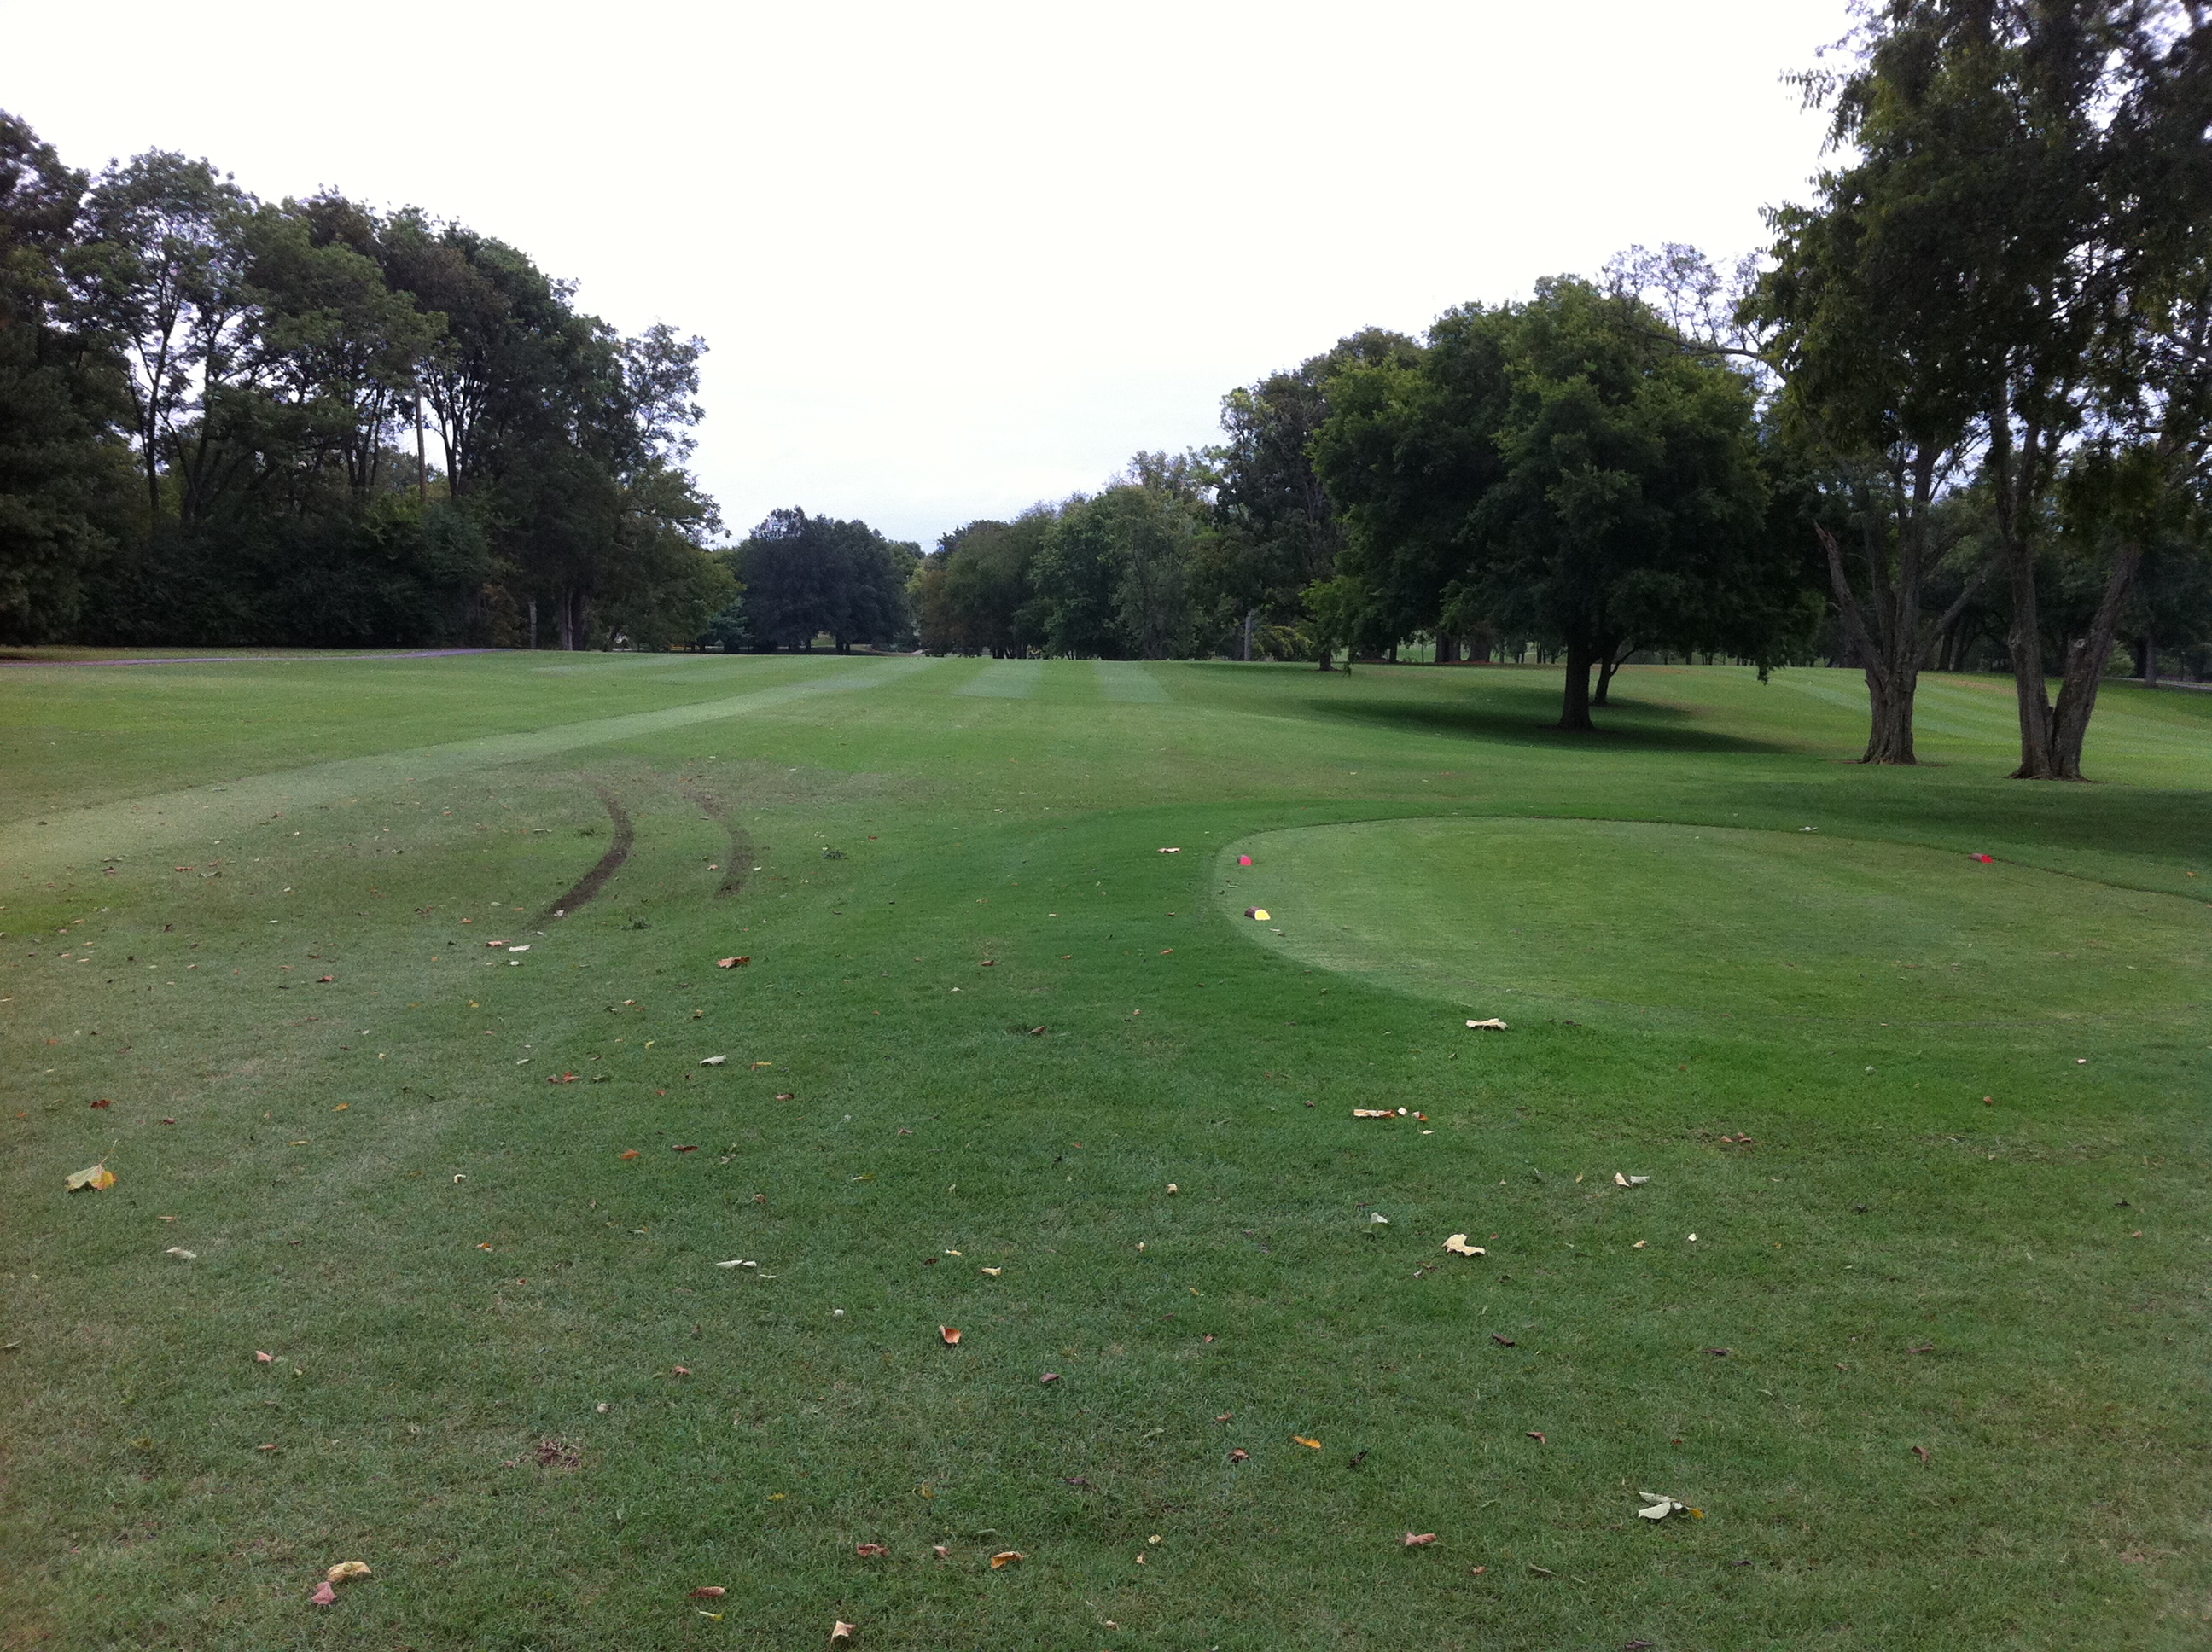 Cart Tracks Next to a Tee on Carts on Path Rule